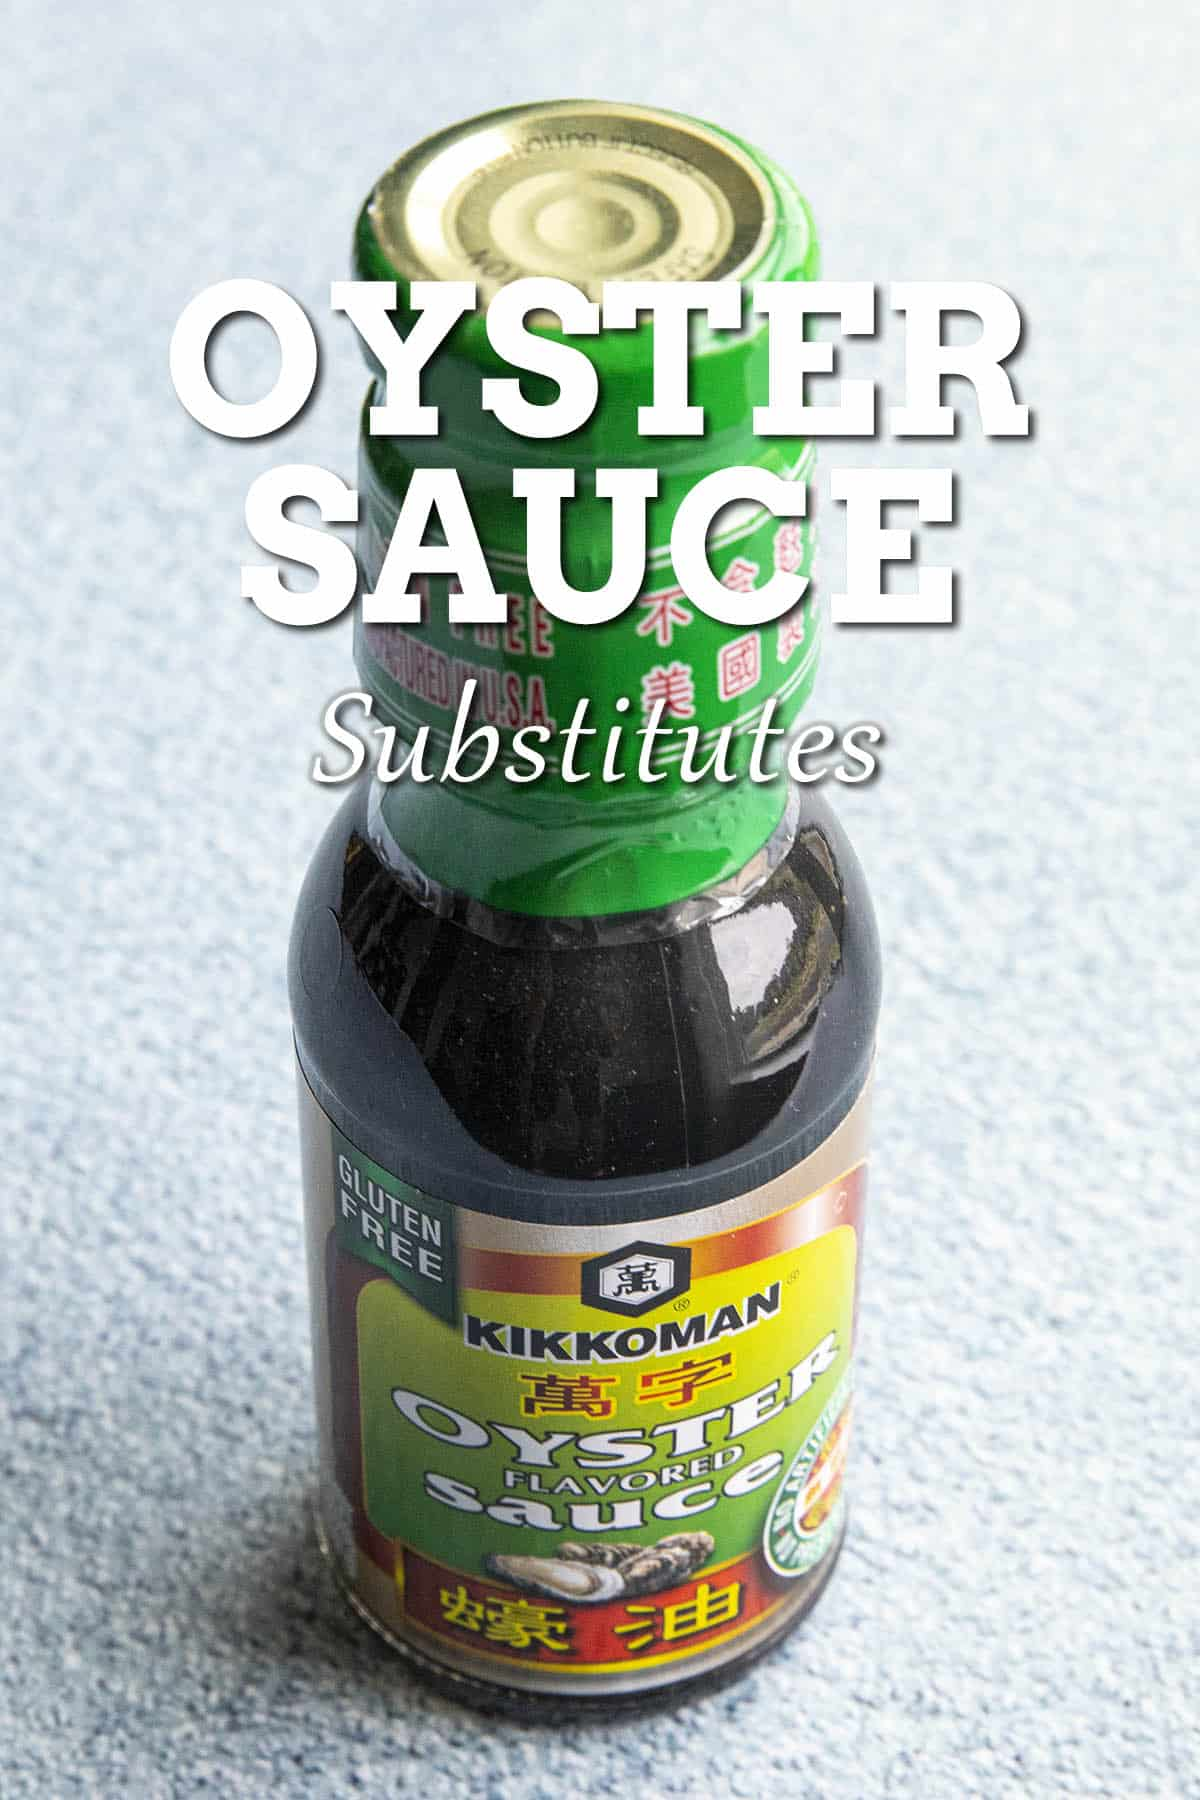 Oyster Sauce Substitutes